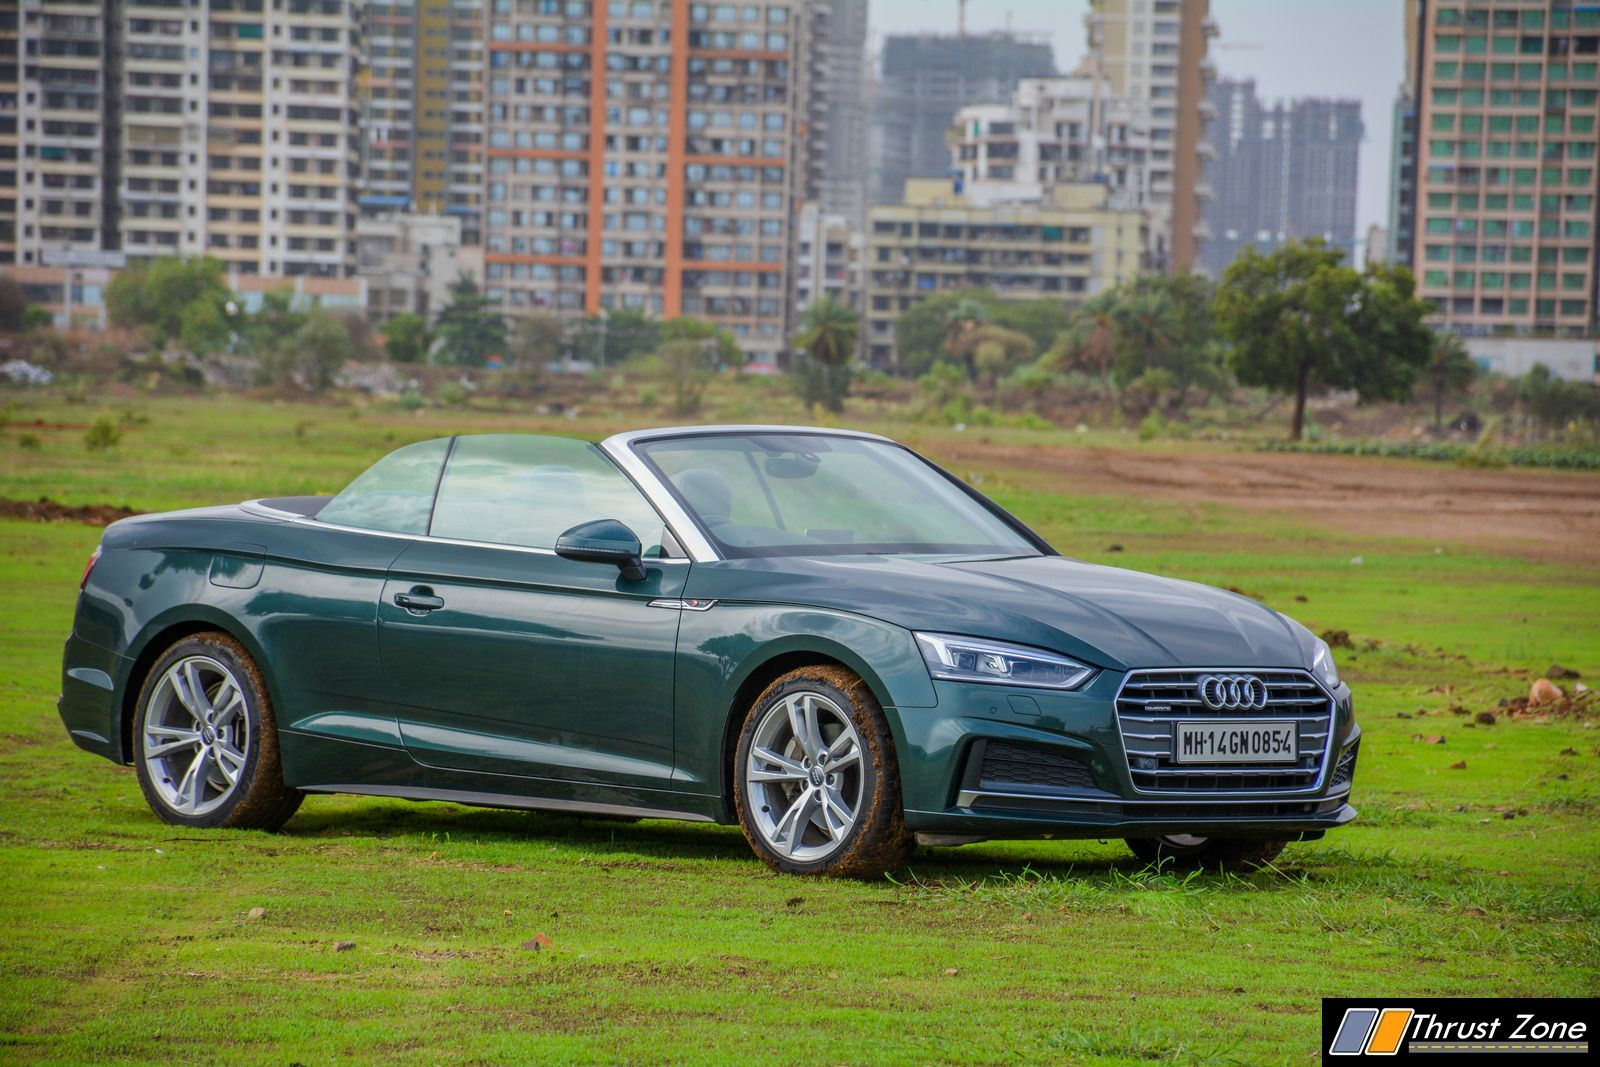 https://www.thrustzone.com/wp-content/uploads/2019/06/2019-Audi-A5-Cabriolet-Convertible-India-Diesel-Review-24.jpg